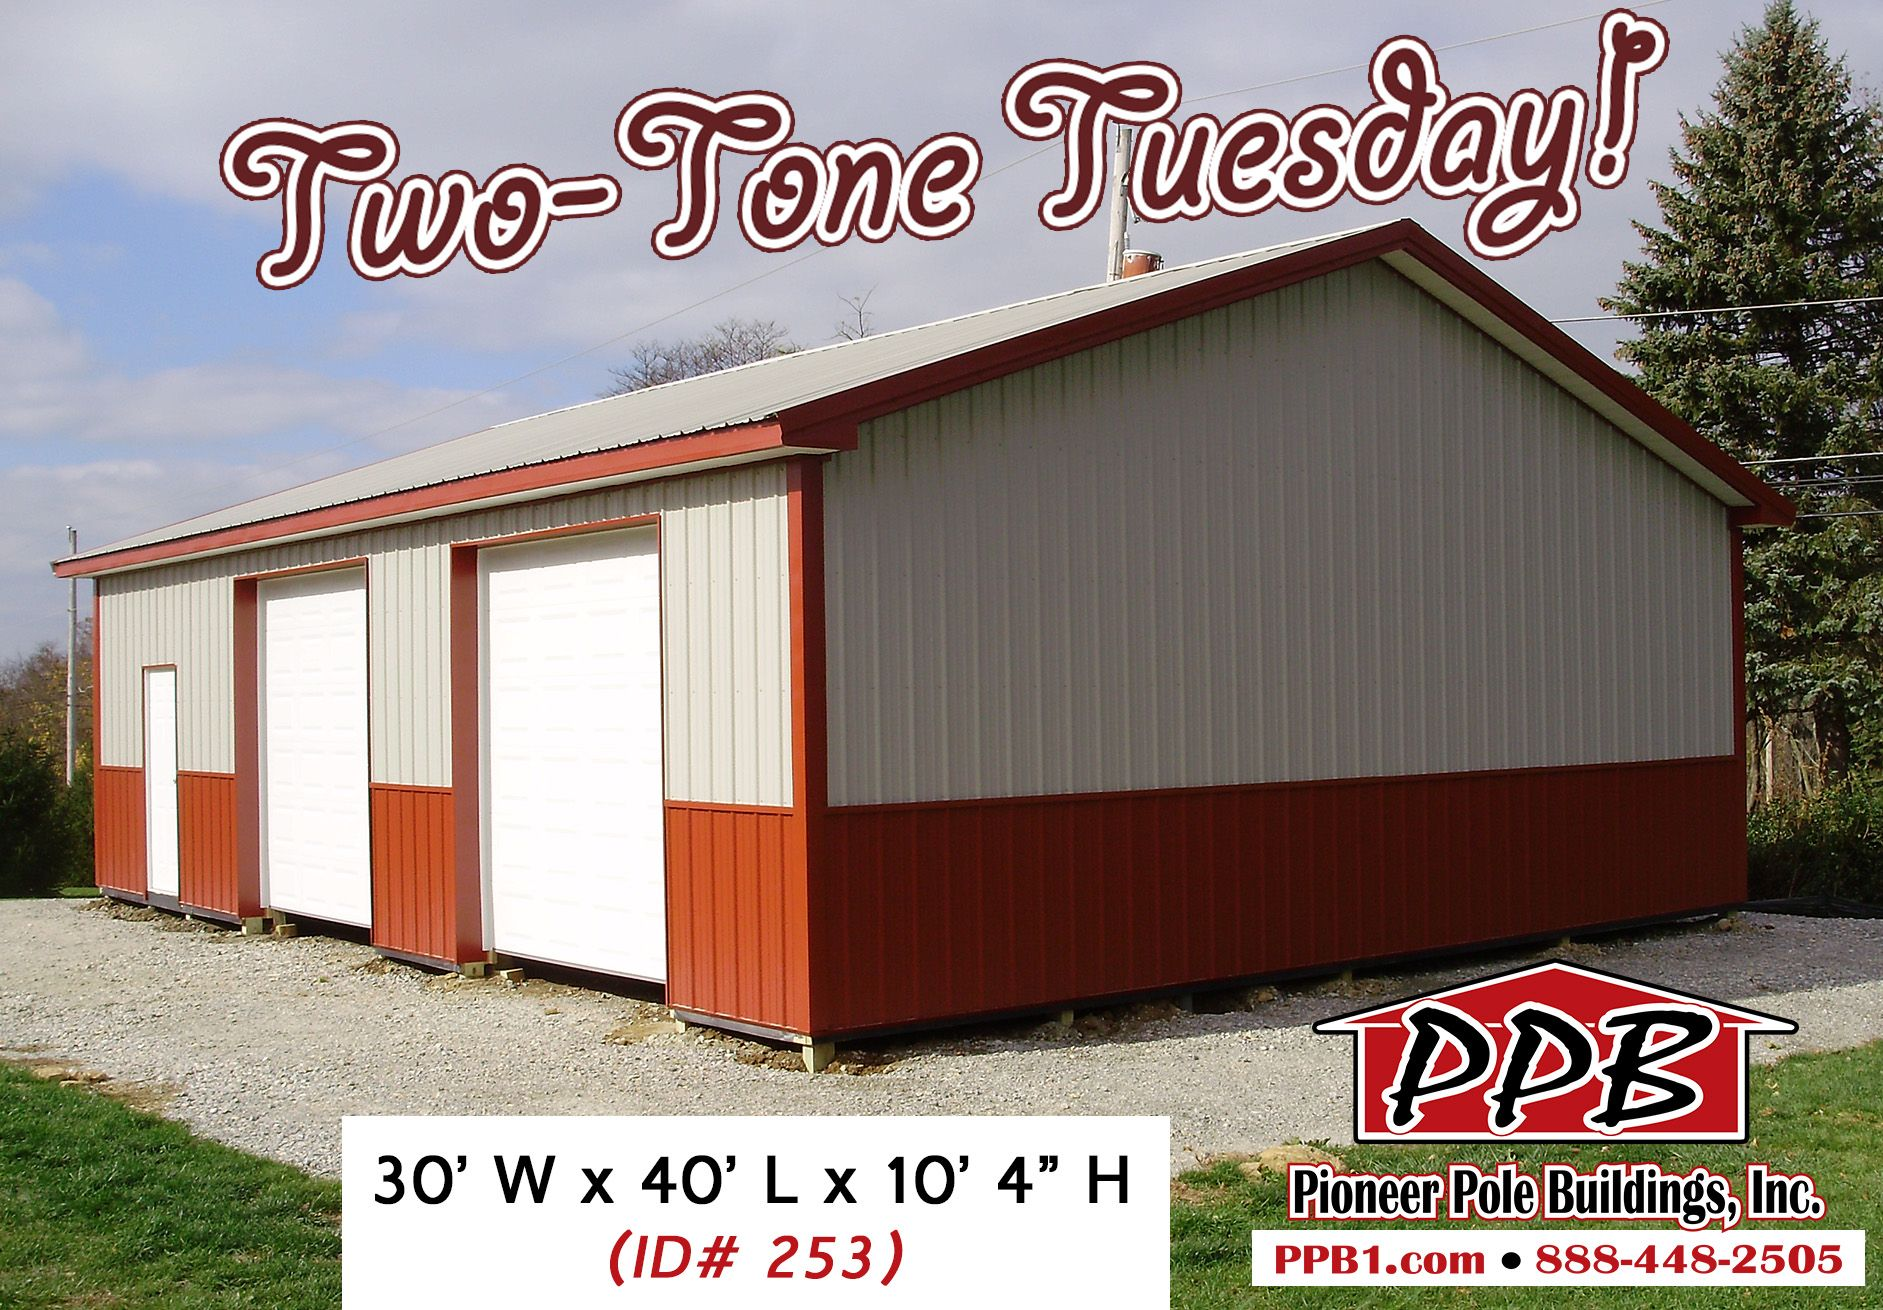 Two Tone Tuesday Dimensions 30 W X 40 L X 10 4 H Id 253 30 Standard Trusses 4 On Center 4 12 Pitch Colors Two Tone Siding Upper Color Ash Gray